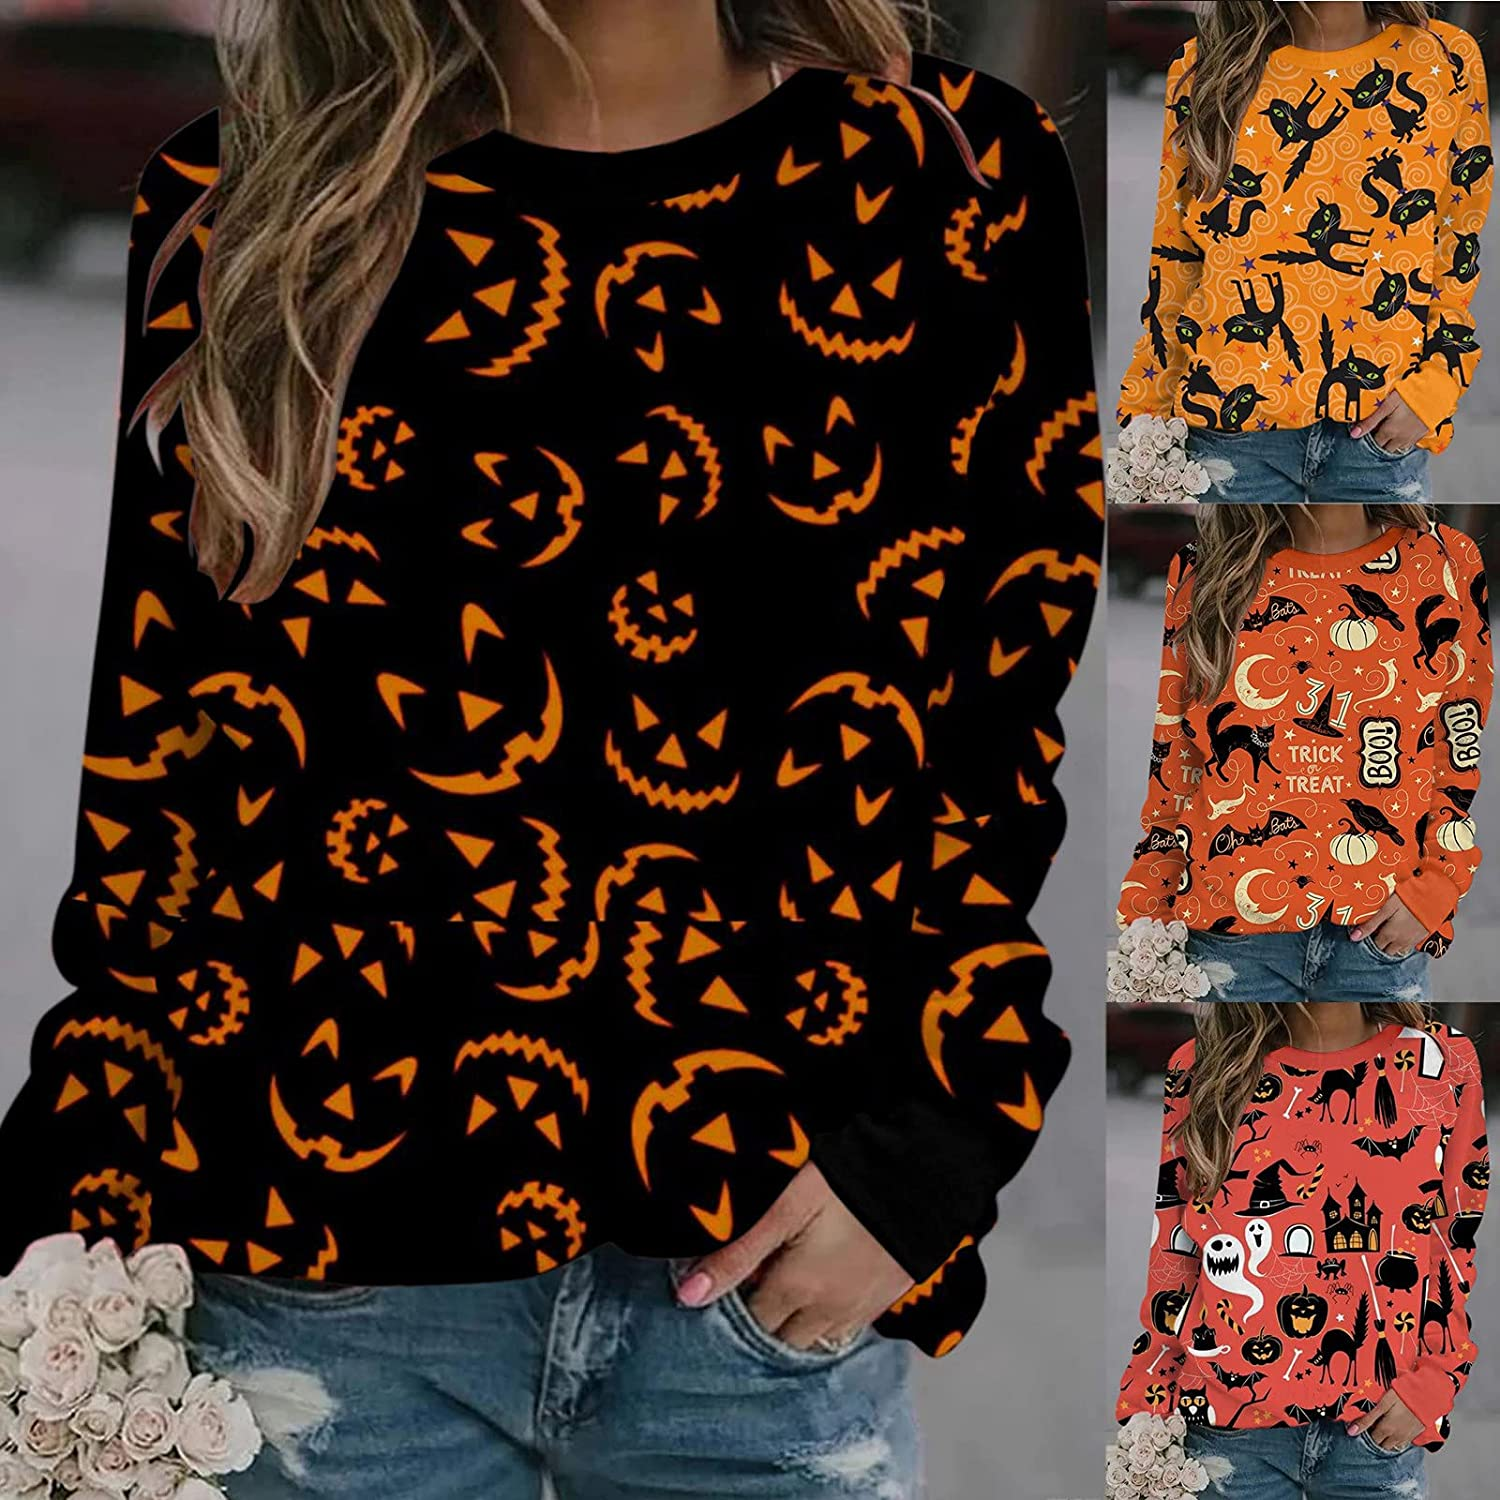 Halloween Shirts for Women,Women Halloween Open Front Cardigan Blouse Funny Pumpkin Graphic Long Sleeved Loose Tops